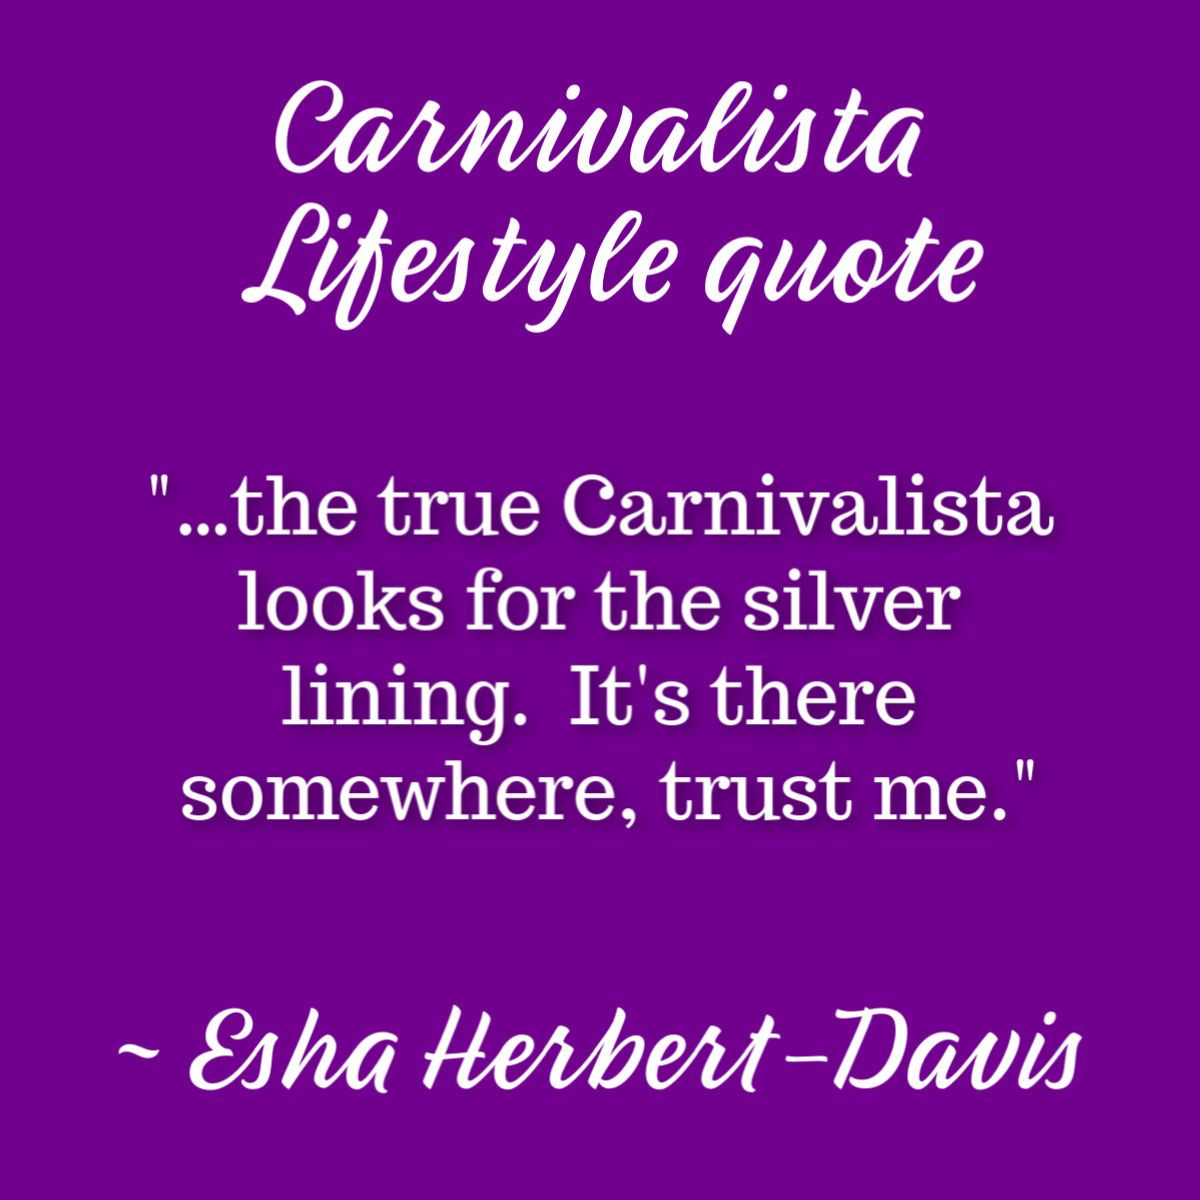 A reminder to look on the bright side from my book Carnivalista Lifestyle. I'm a strong believer of everything happens for a reason, so trust the process! #lookforthesilverlining #glasshalffull #optimist #inspiration #dailyinspiration #carnivalista #carnivalistalifestylepic.twitter.com/UmFXTSnE7H